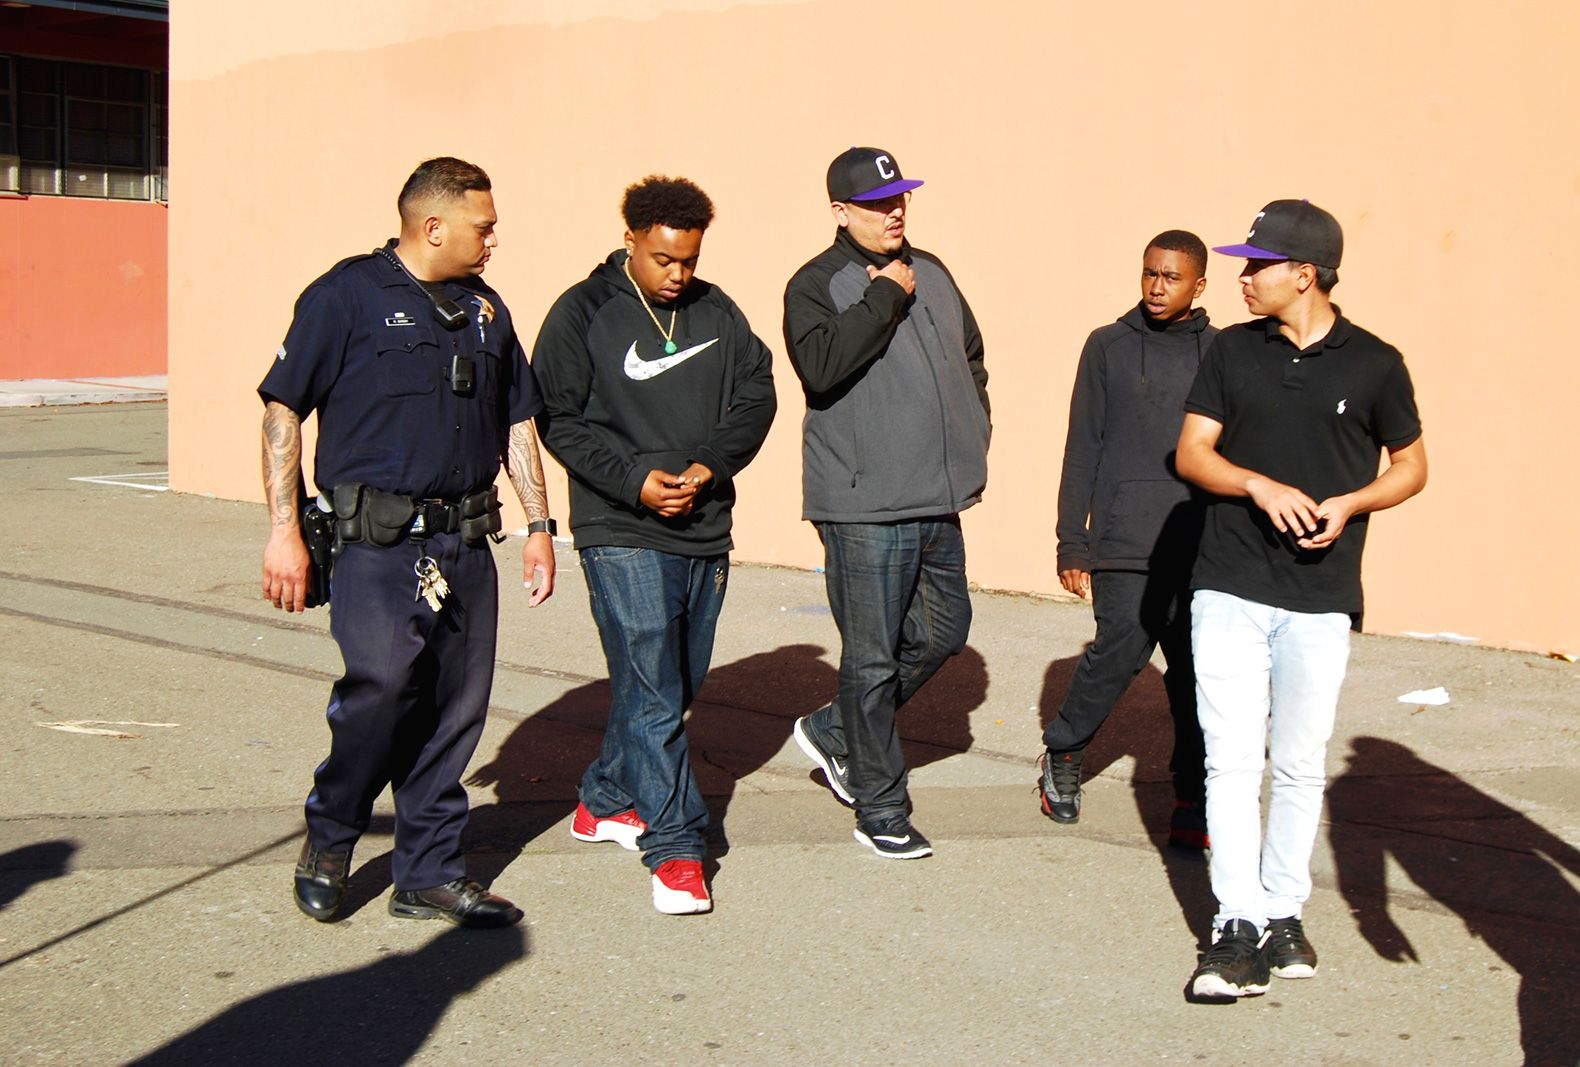 A group of Castlemont students walk with Navarro and Singh on campus.